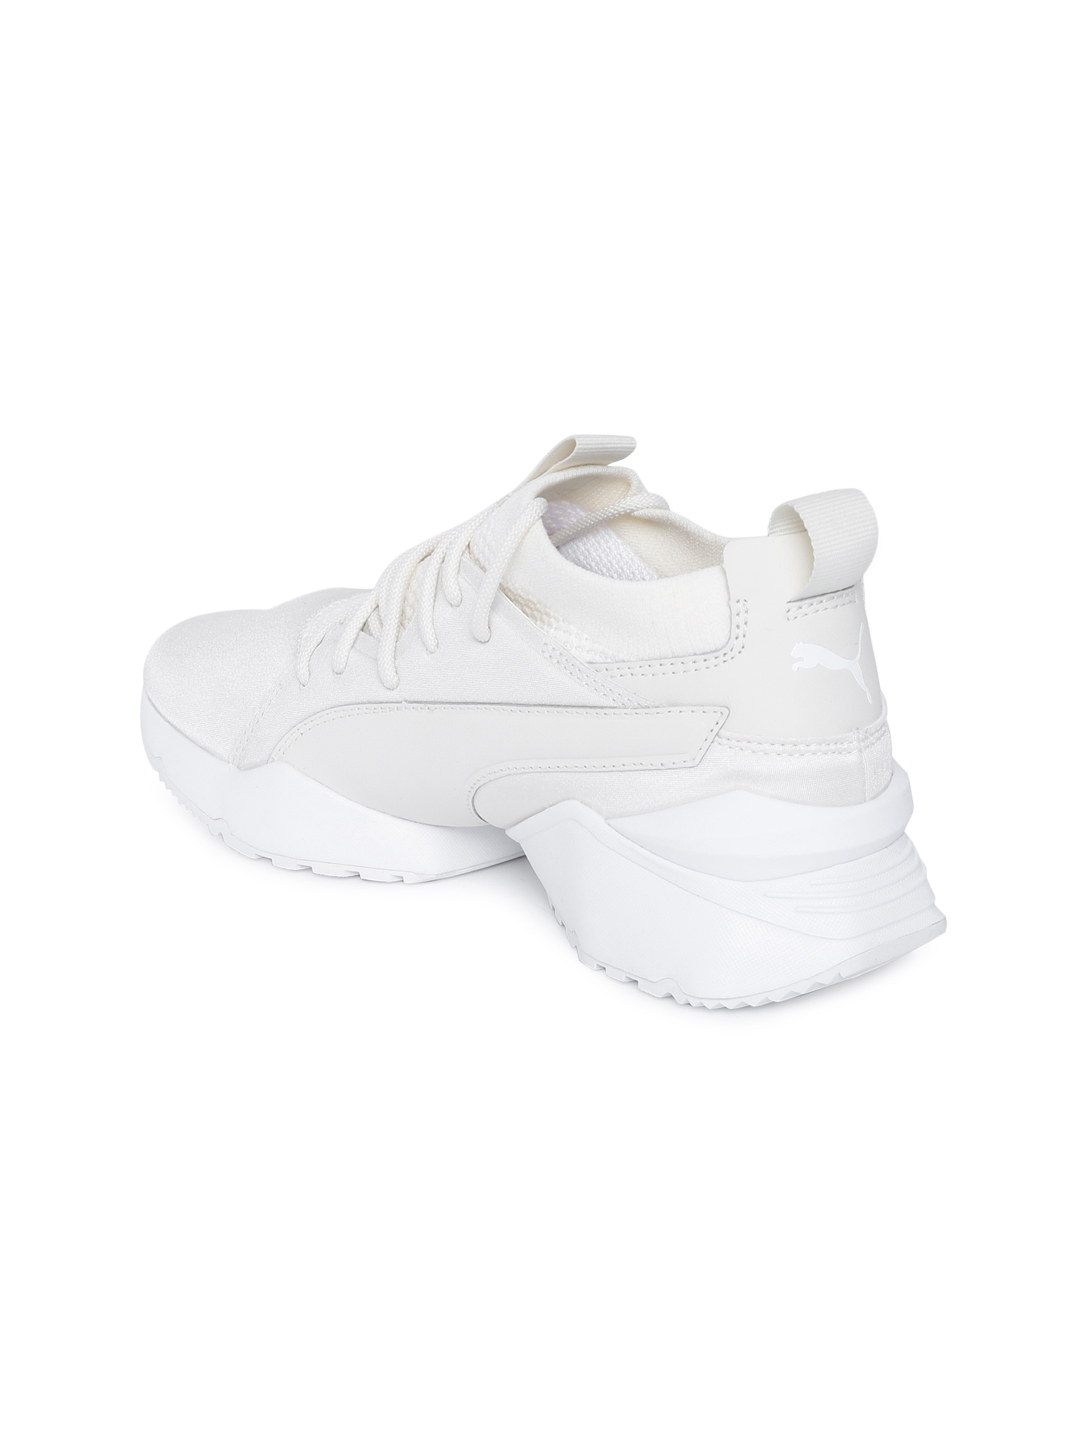 00098193a066 Buy Puma Women Off White Muse Maia Knit Premium Sneakers - Casual ...